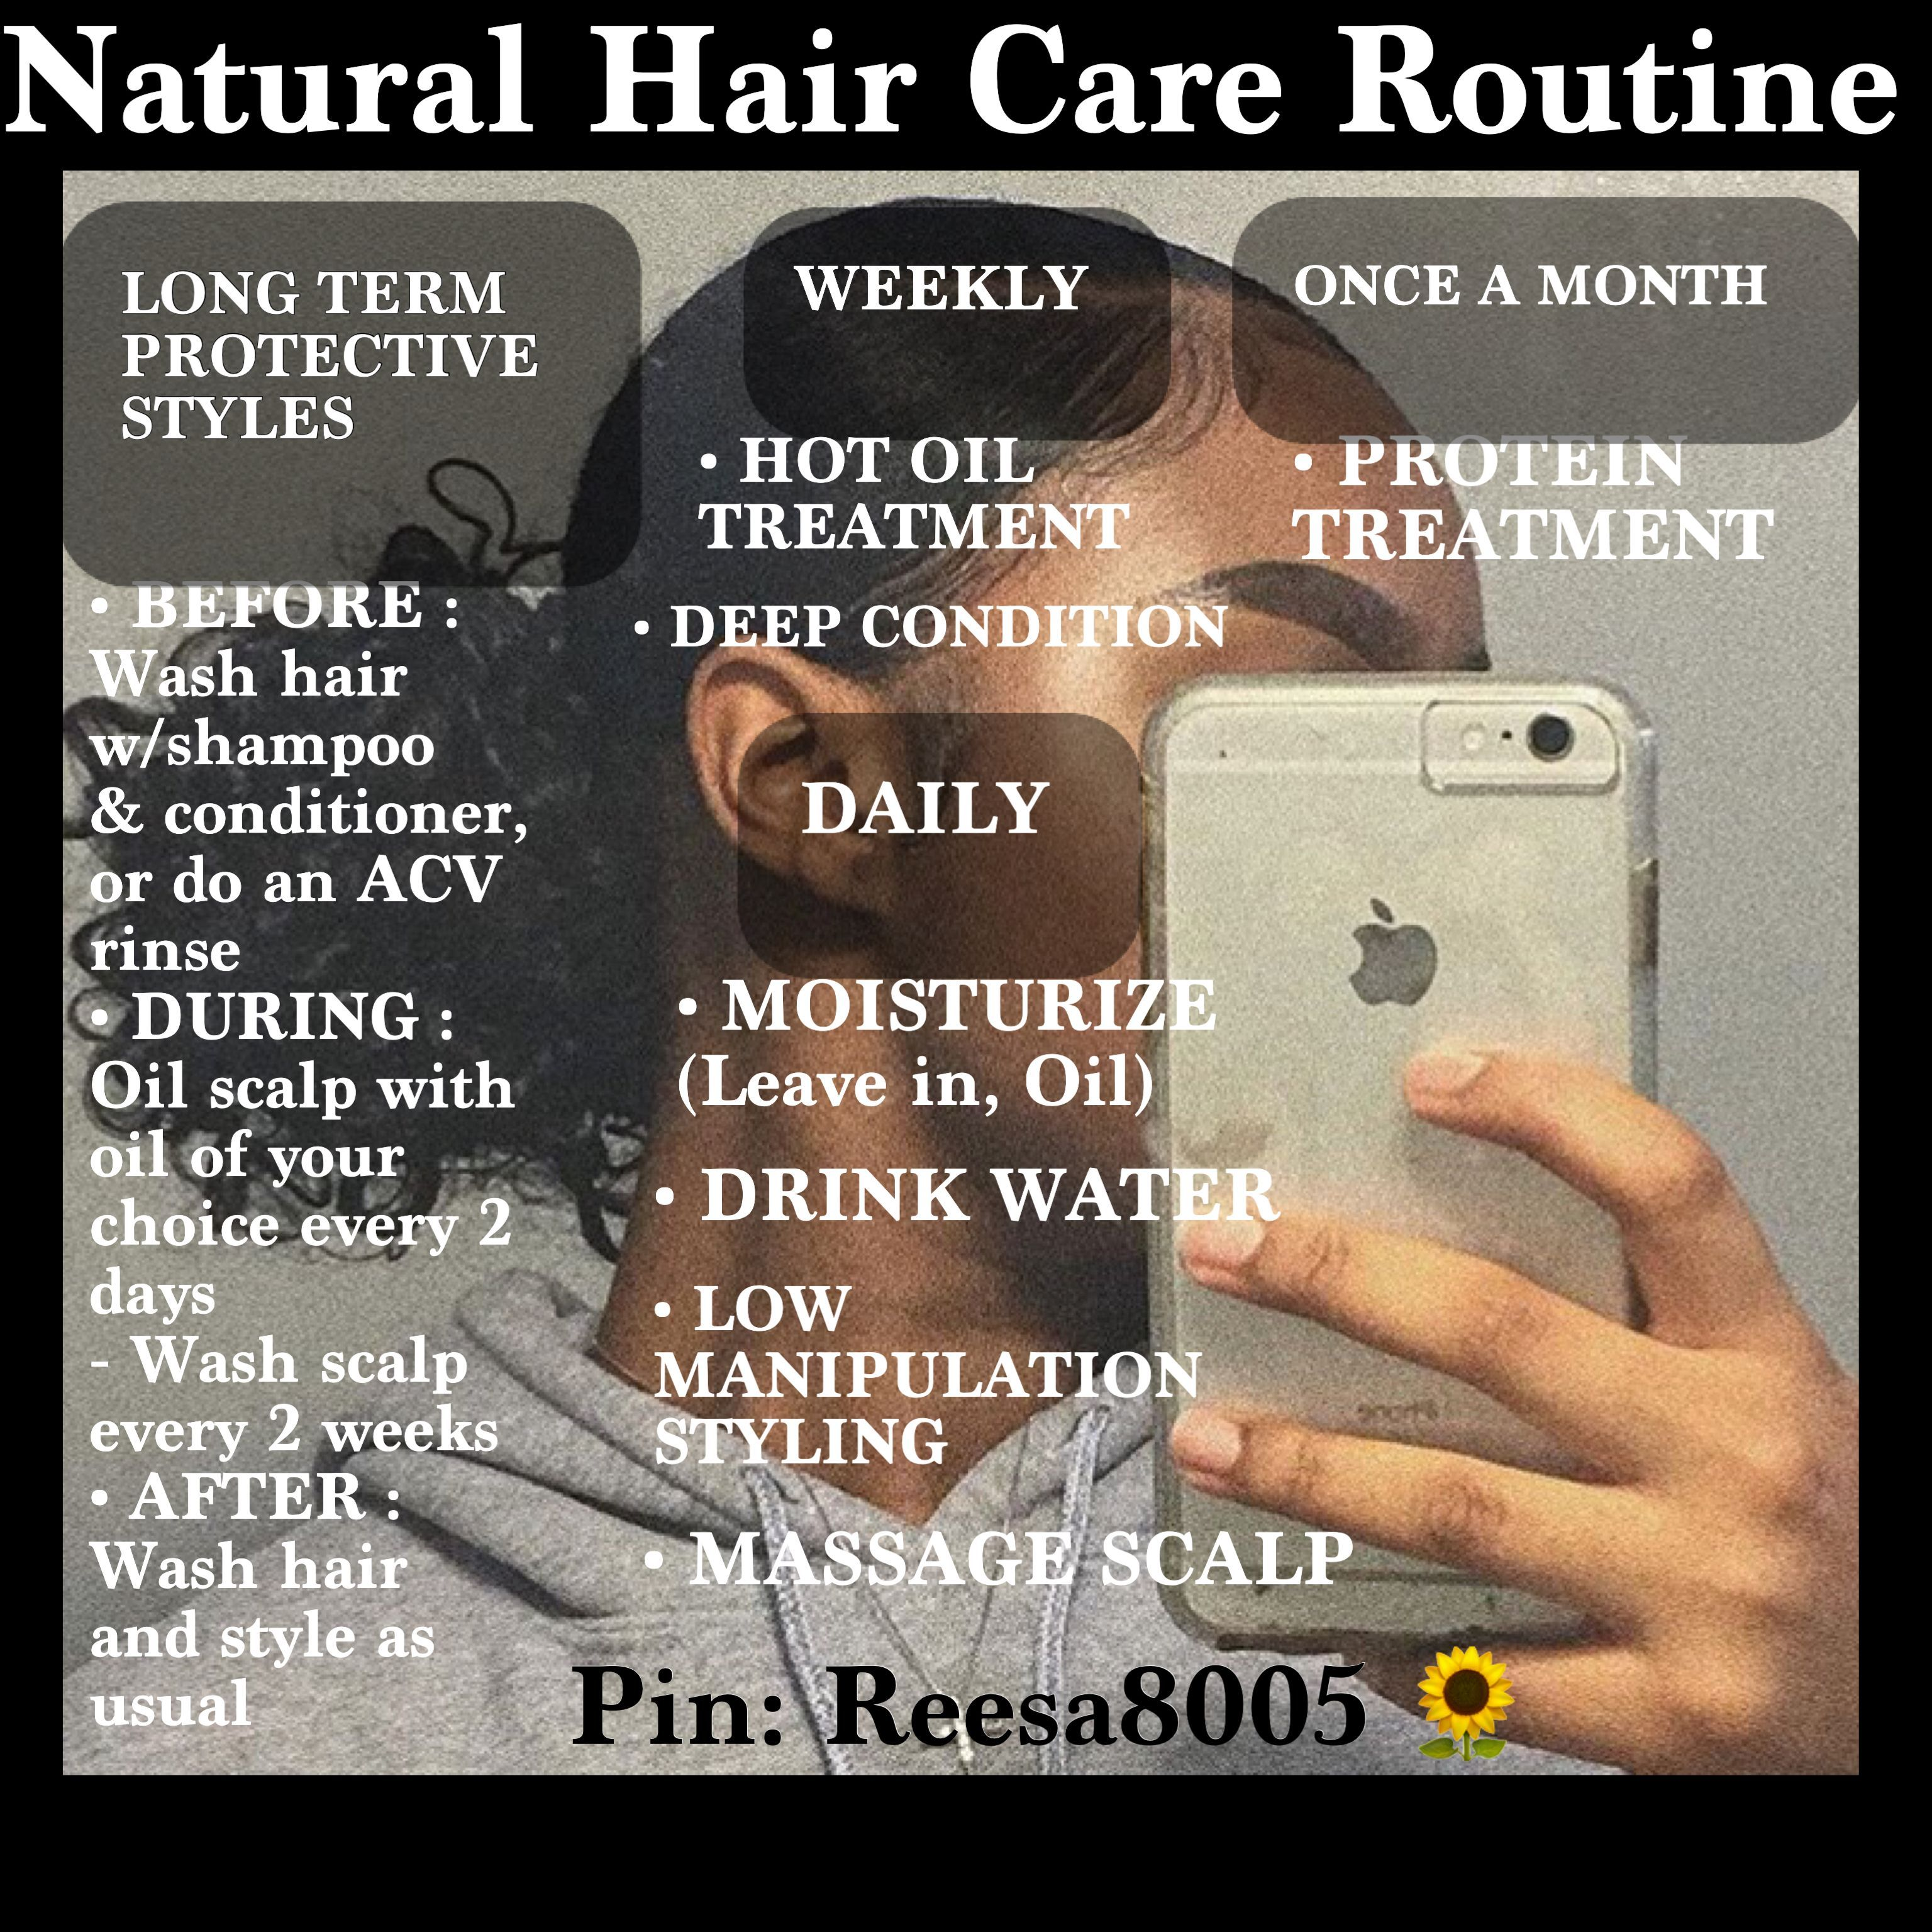 Youtube Naturally Mystique Twitter Naturallymysti2 Pinterest Champagnemamii Jae Champagnema In 2020 Natural Hair Styles Hair Growth Tips Natural Hair Care Routine